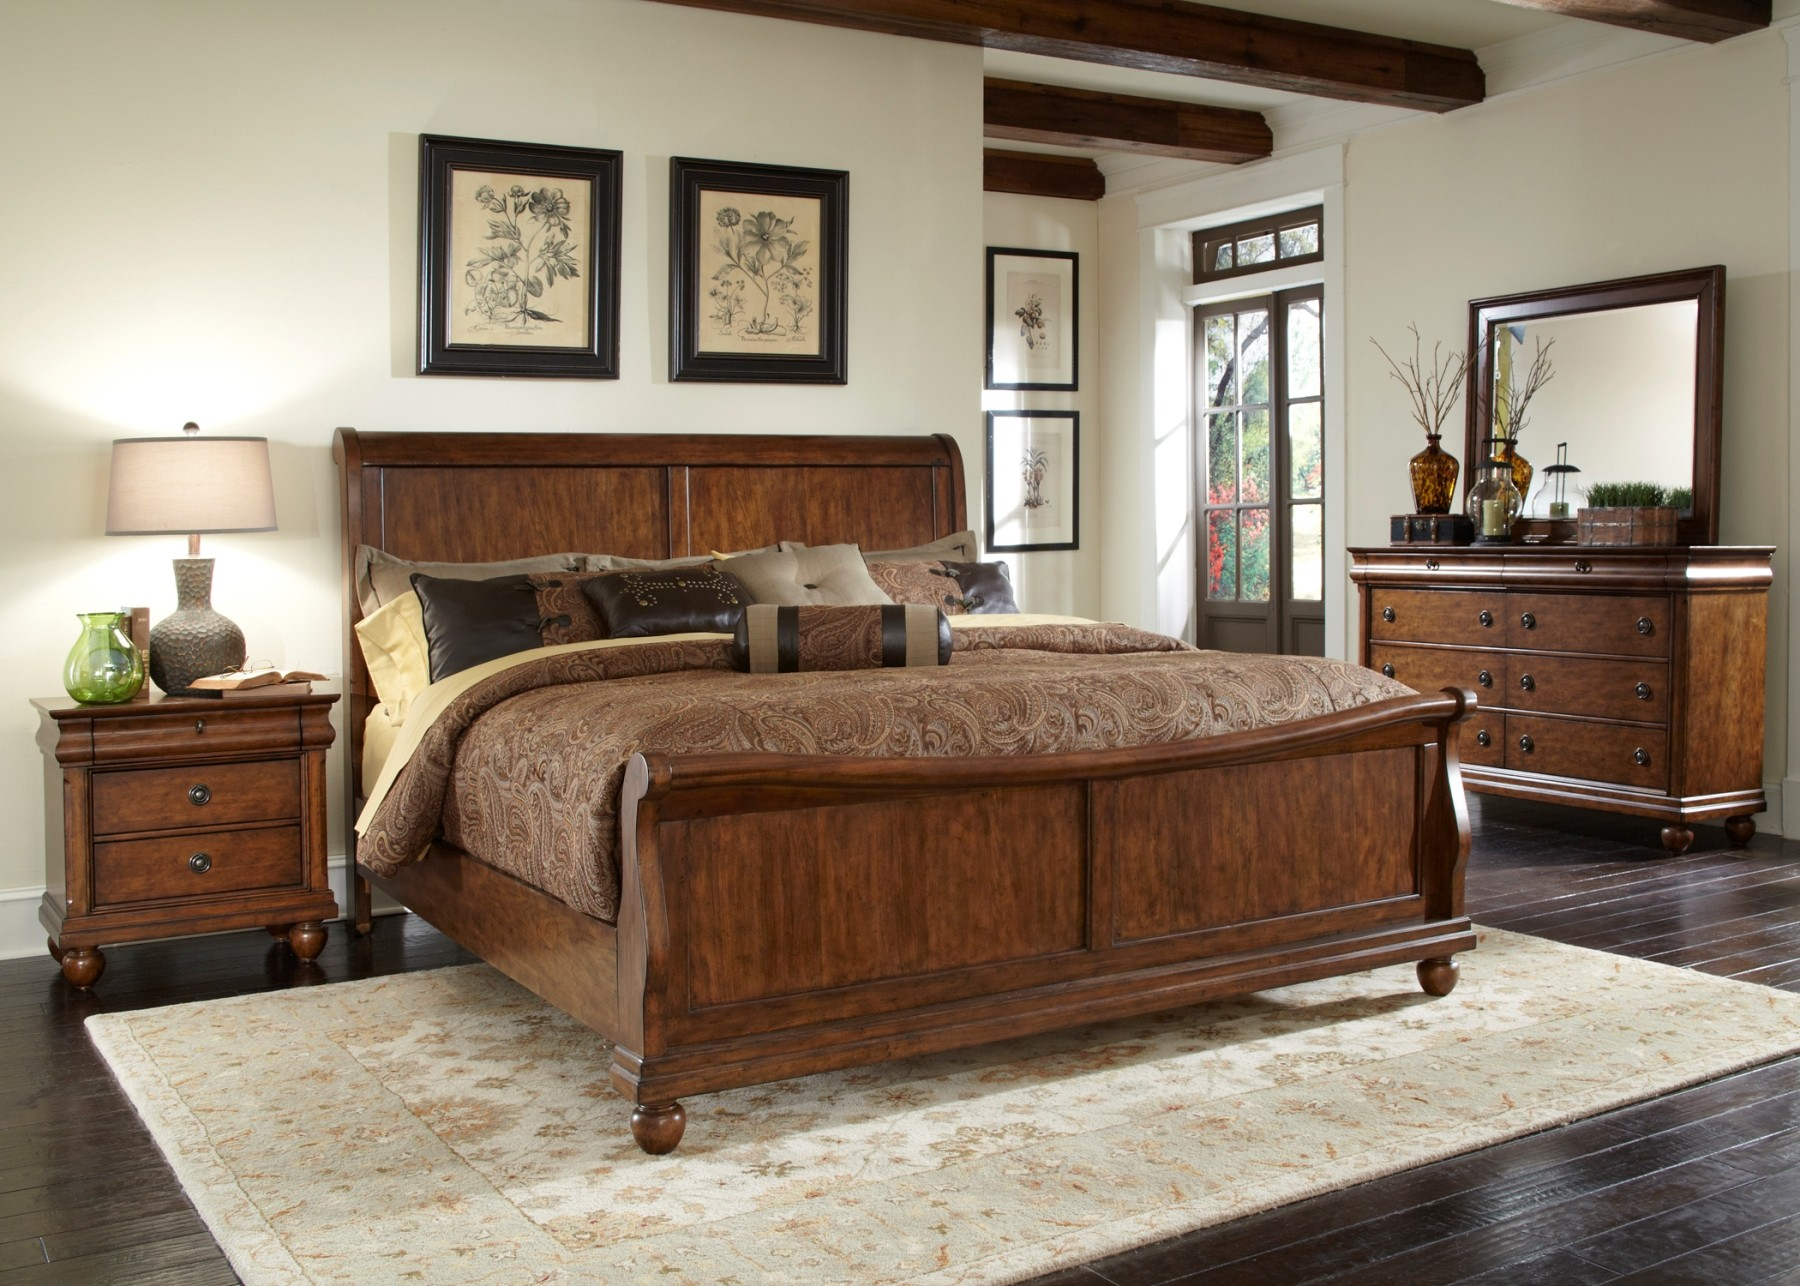 Rustic Traditions Sleigh Bedroom Set from Liberty 589 BR QSL